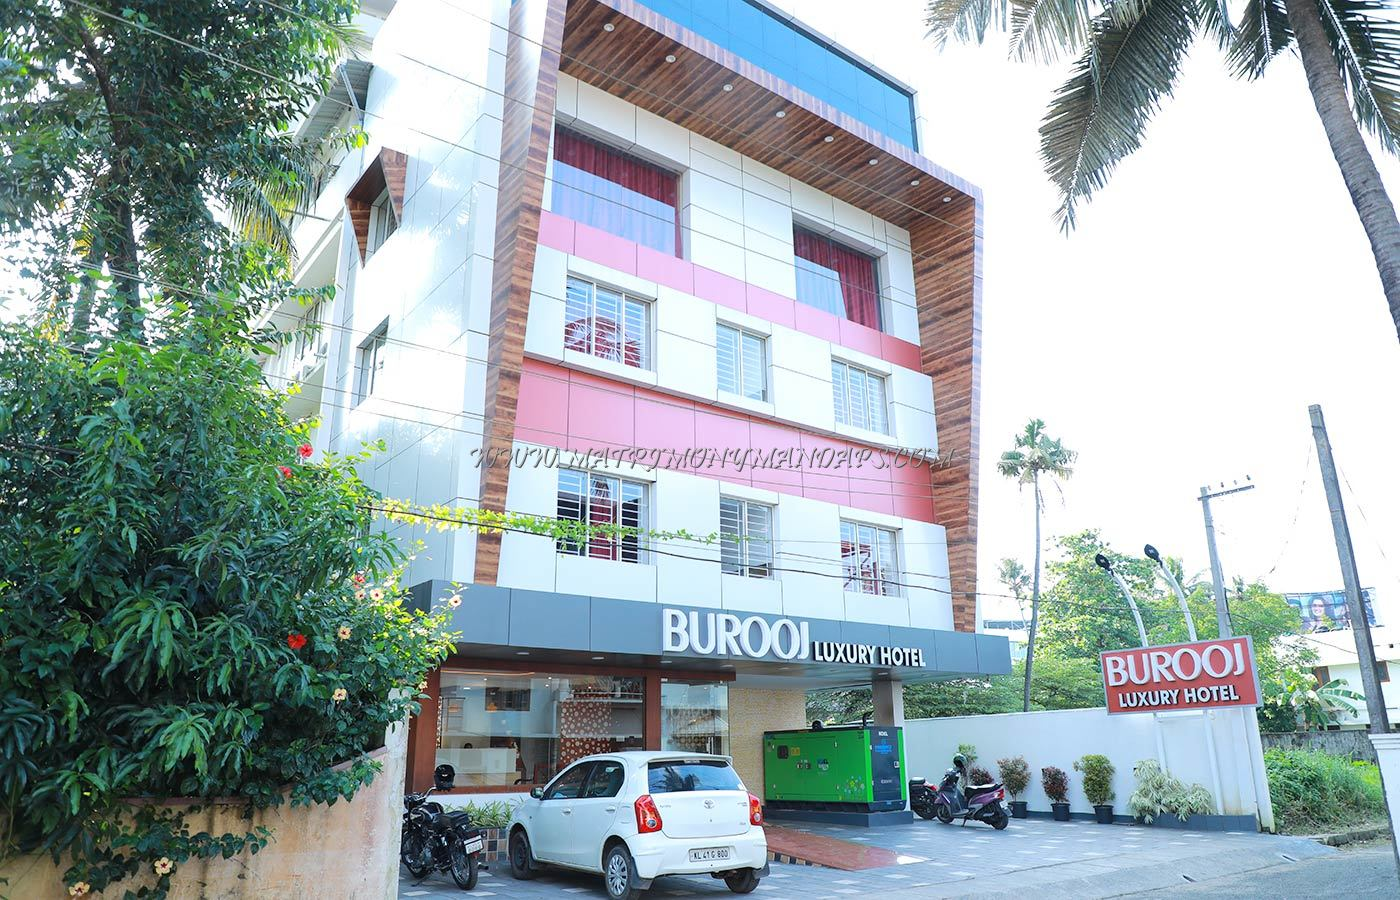 Find More Banquet Halls in Edappally